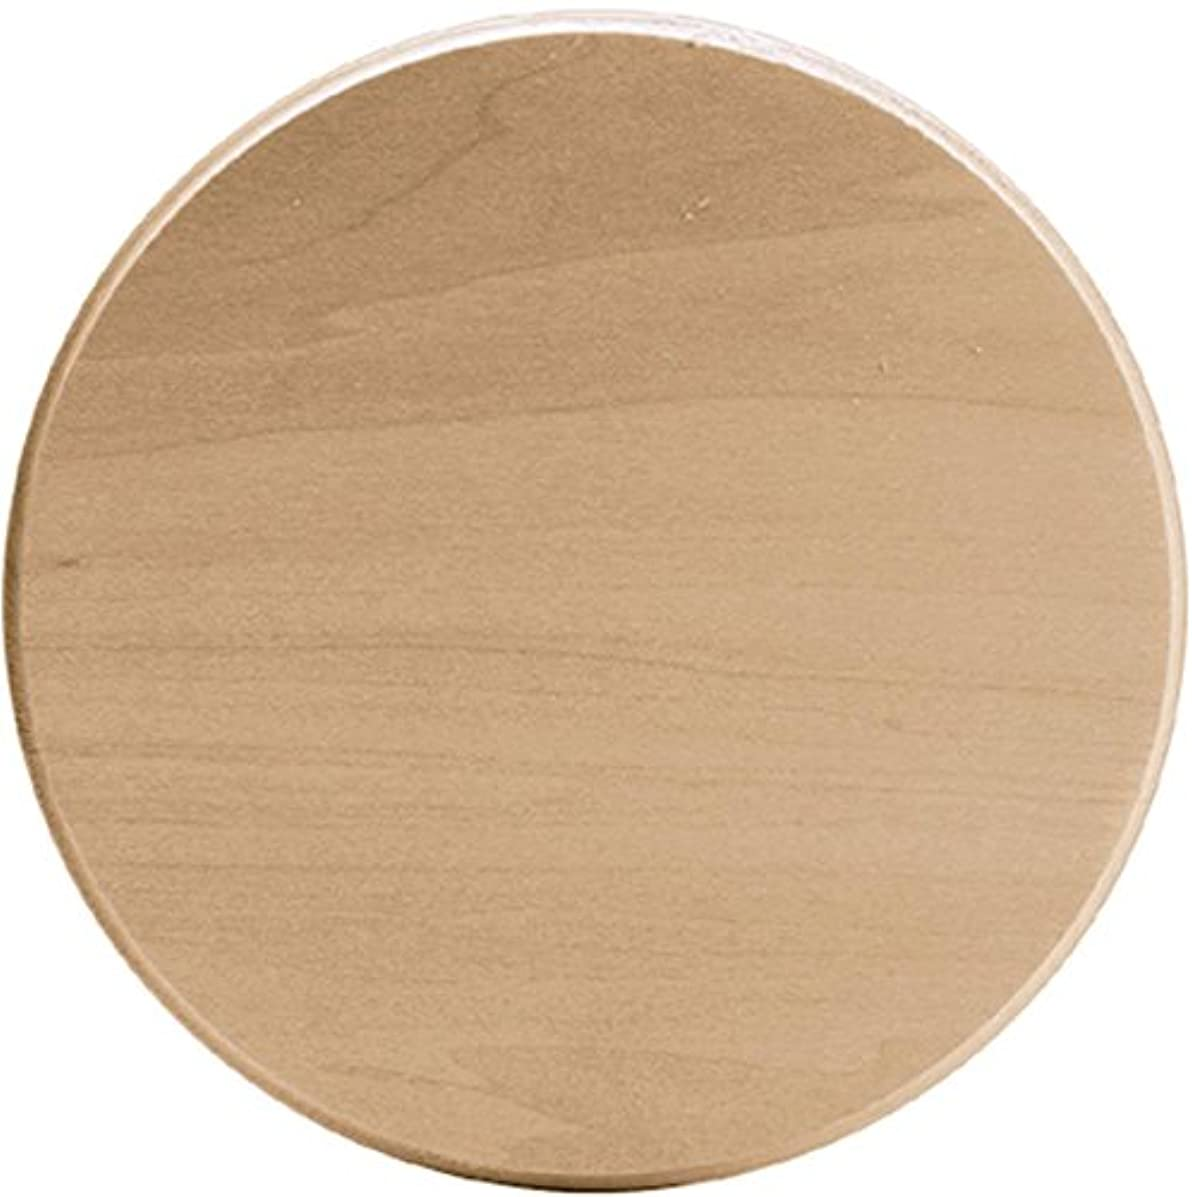 Walnut Hollow Basswood Circle Thin Plaque, 6 by 6-Inch